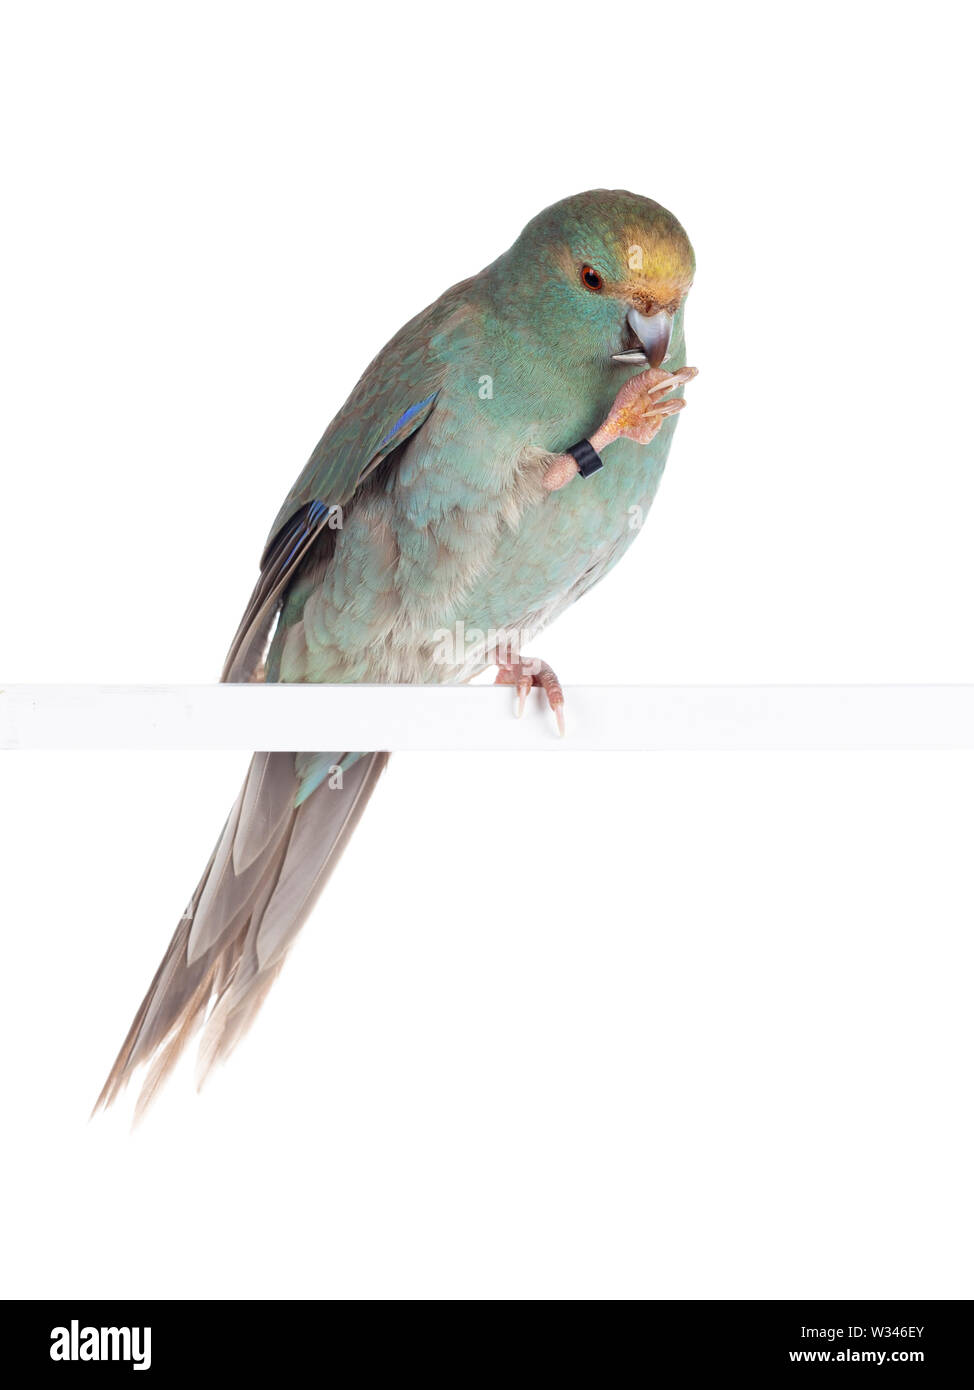 Curious turquoise Kakariki bird sitting on one claw on white rod with sunflower seed in beak, looking at seed. Isolated on white background. - Stock Image